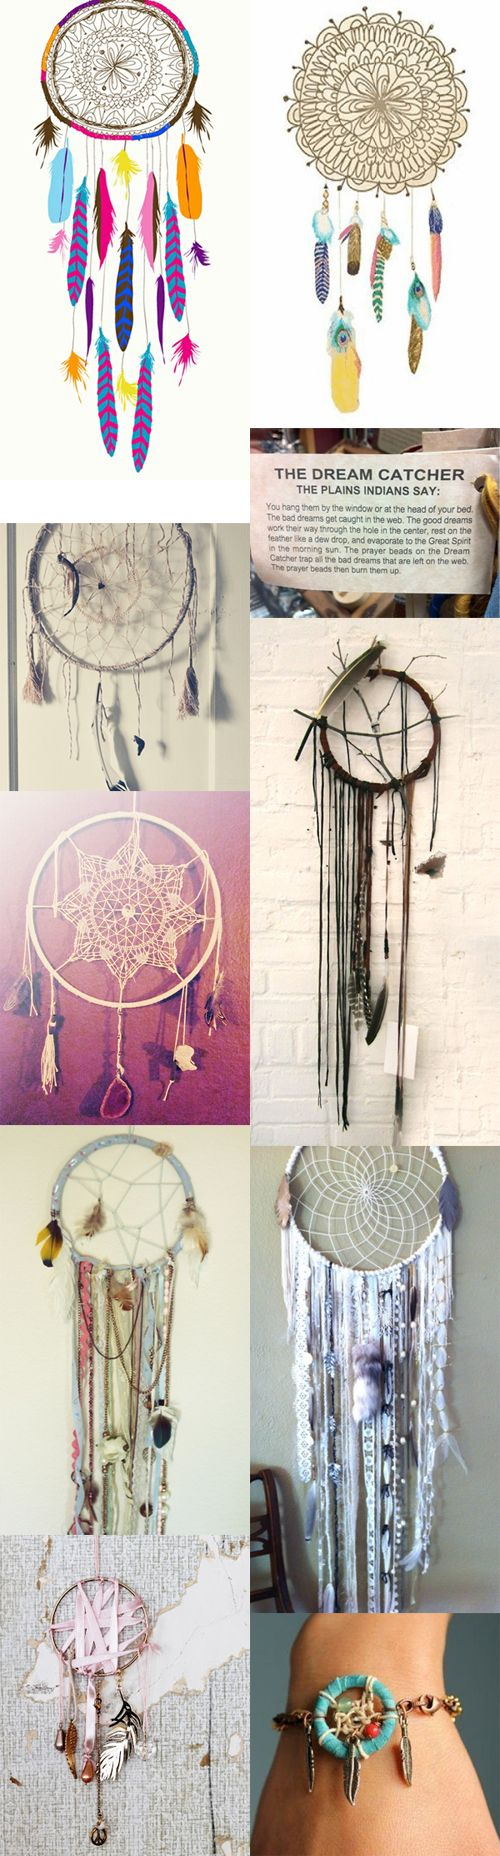 as everyone may know, I am OBSESSED with, and collect dream catchers :)